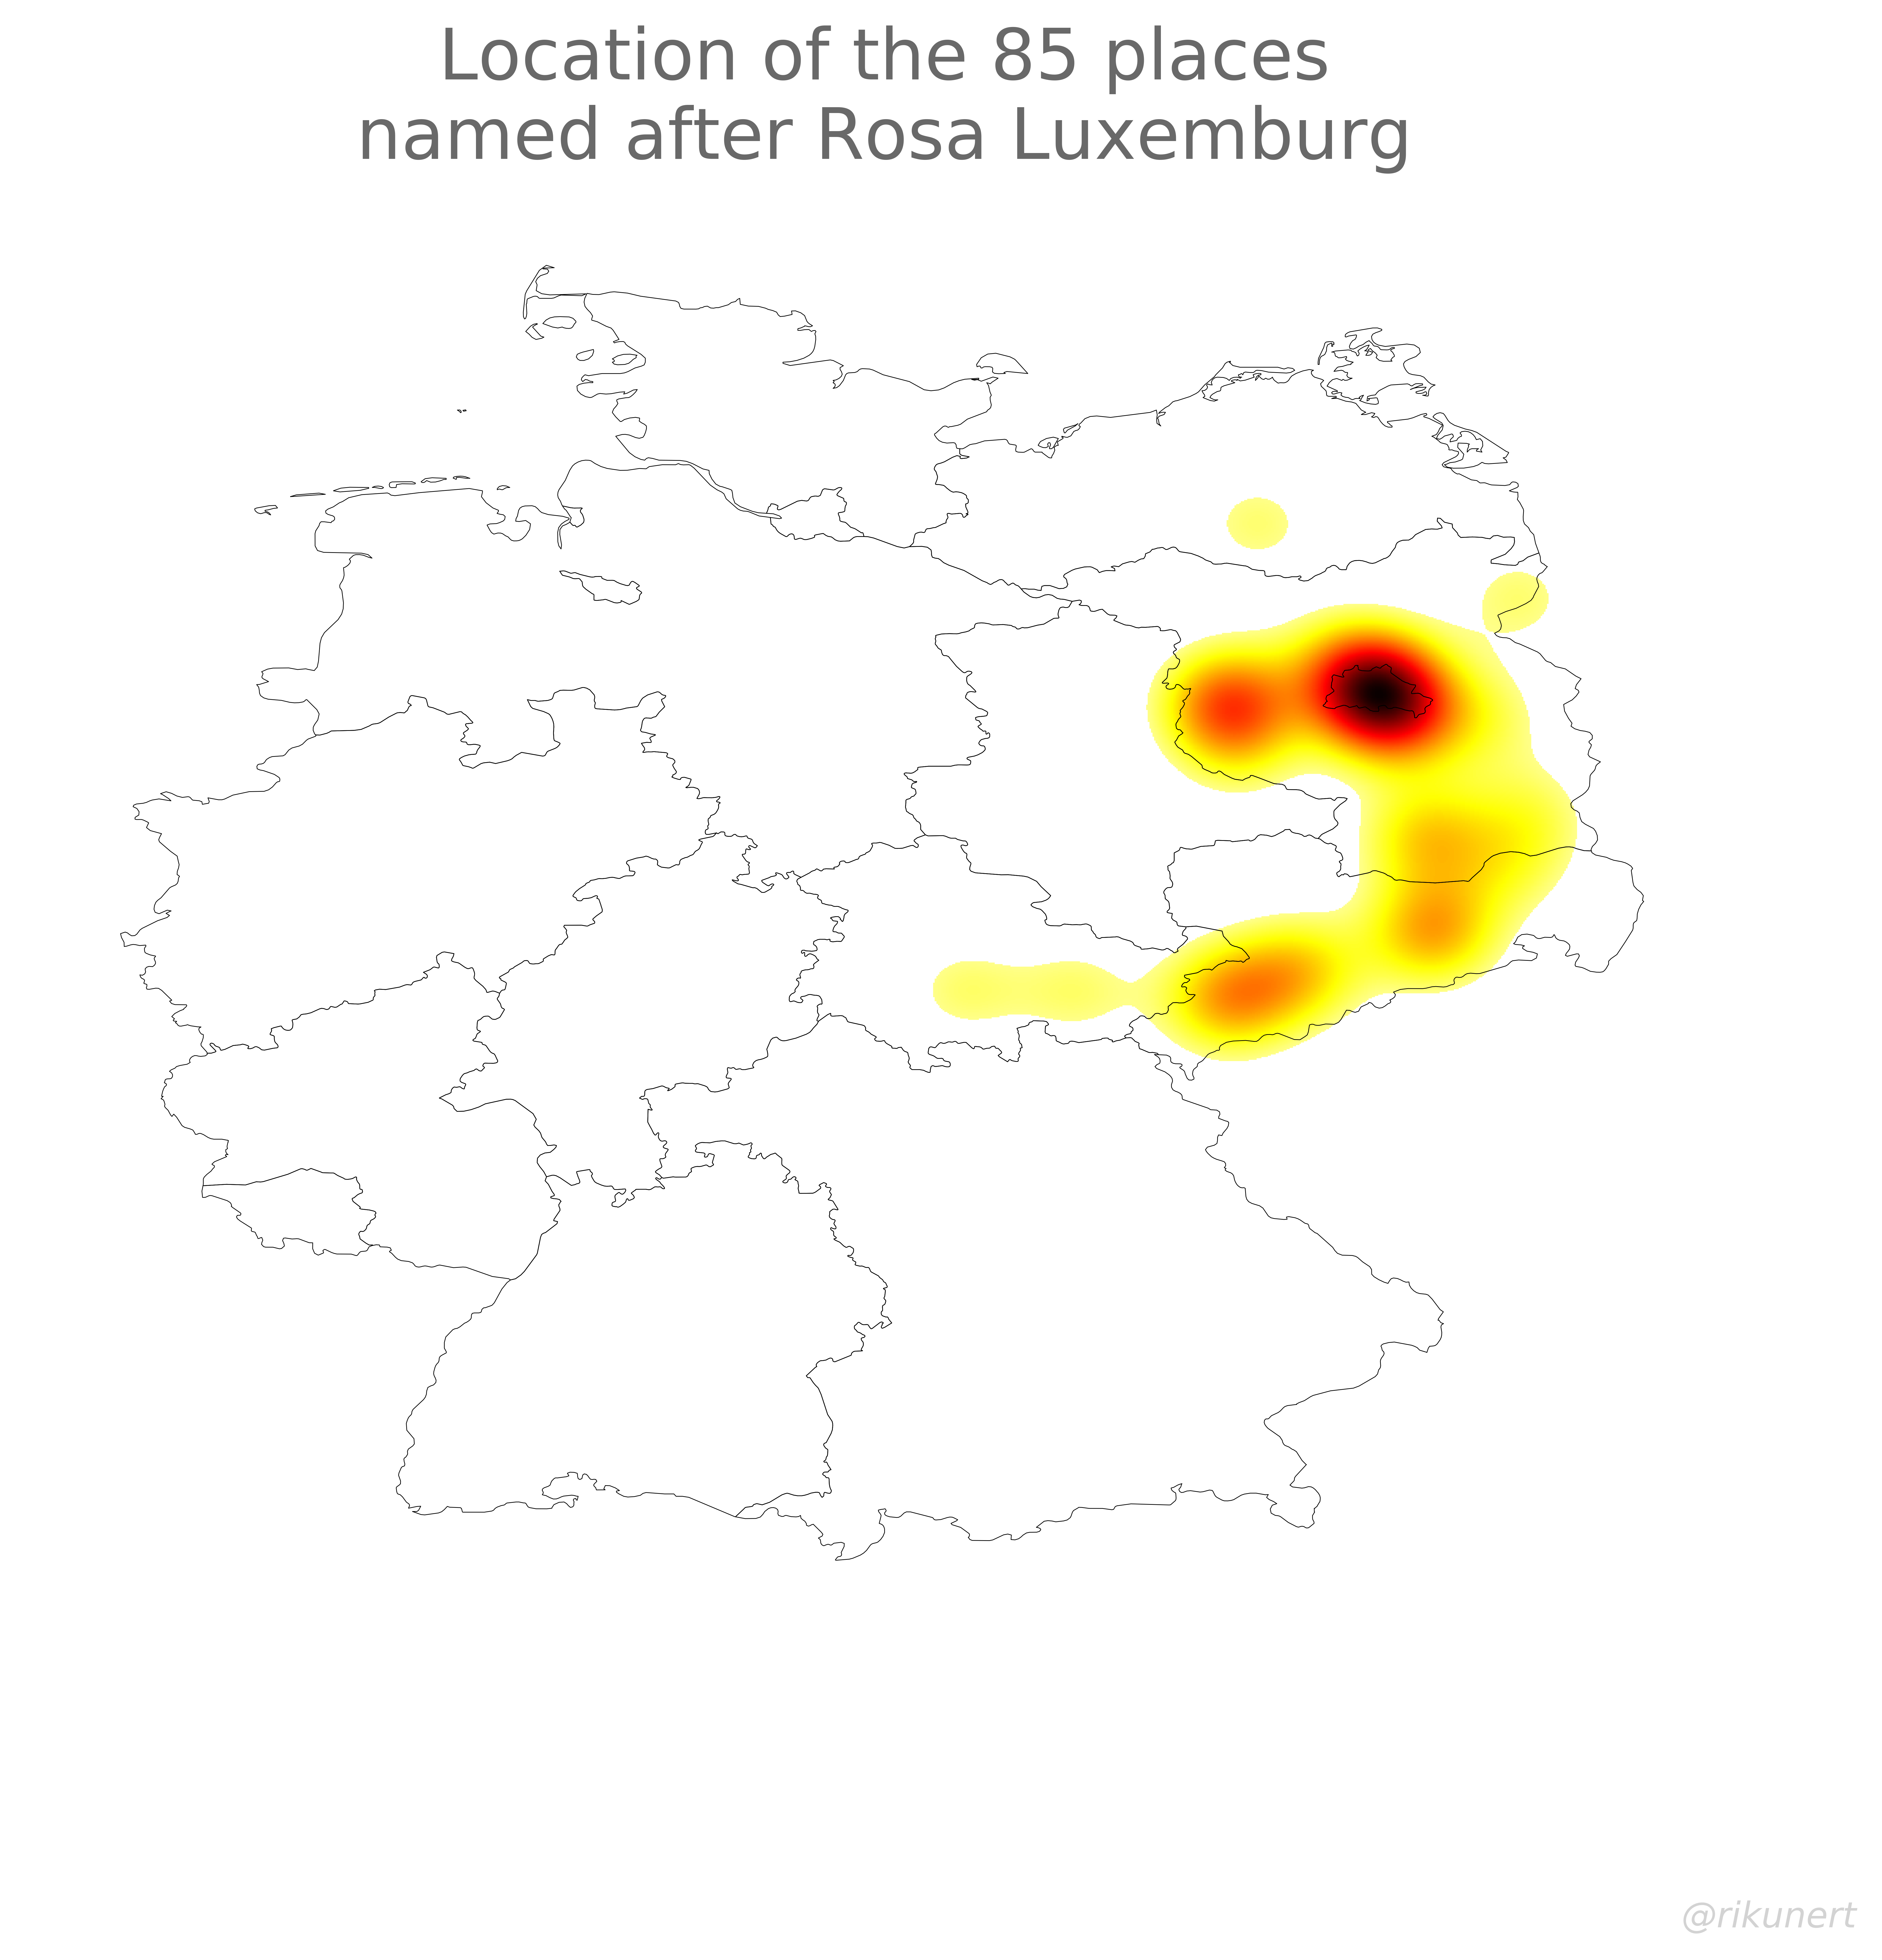 Rosa Luxemburg place names heat map